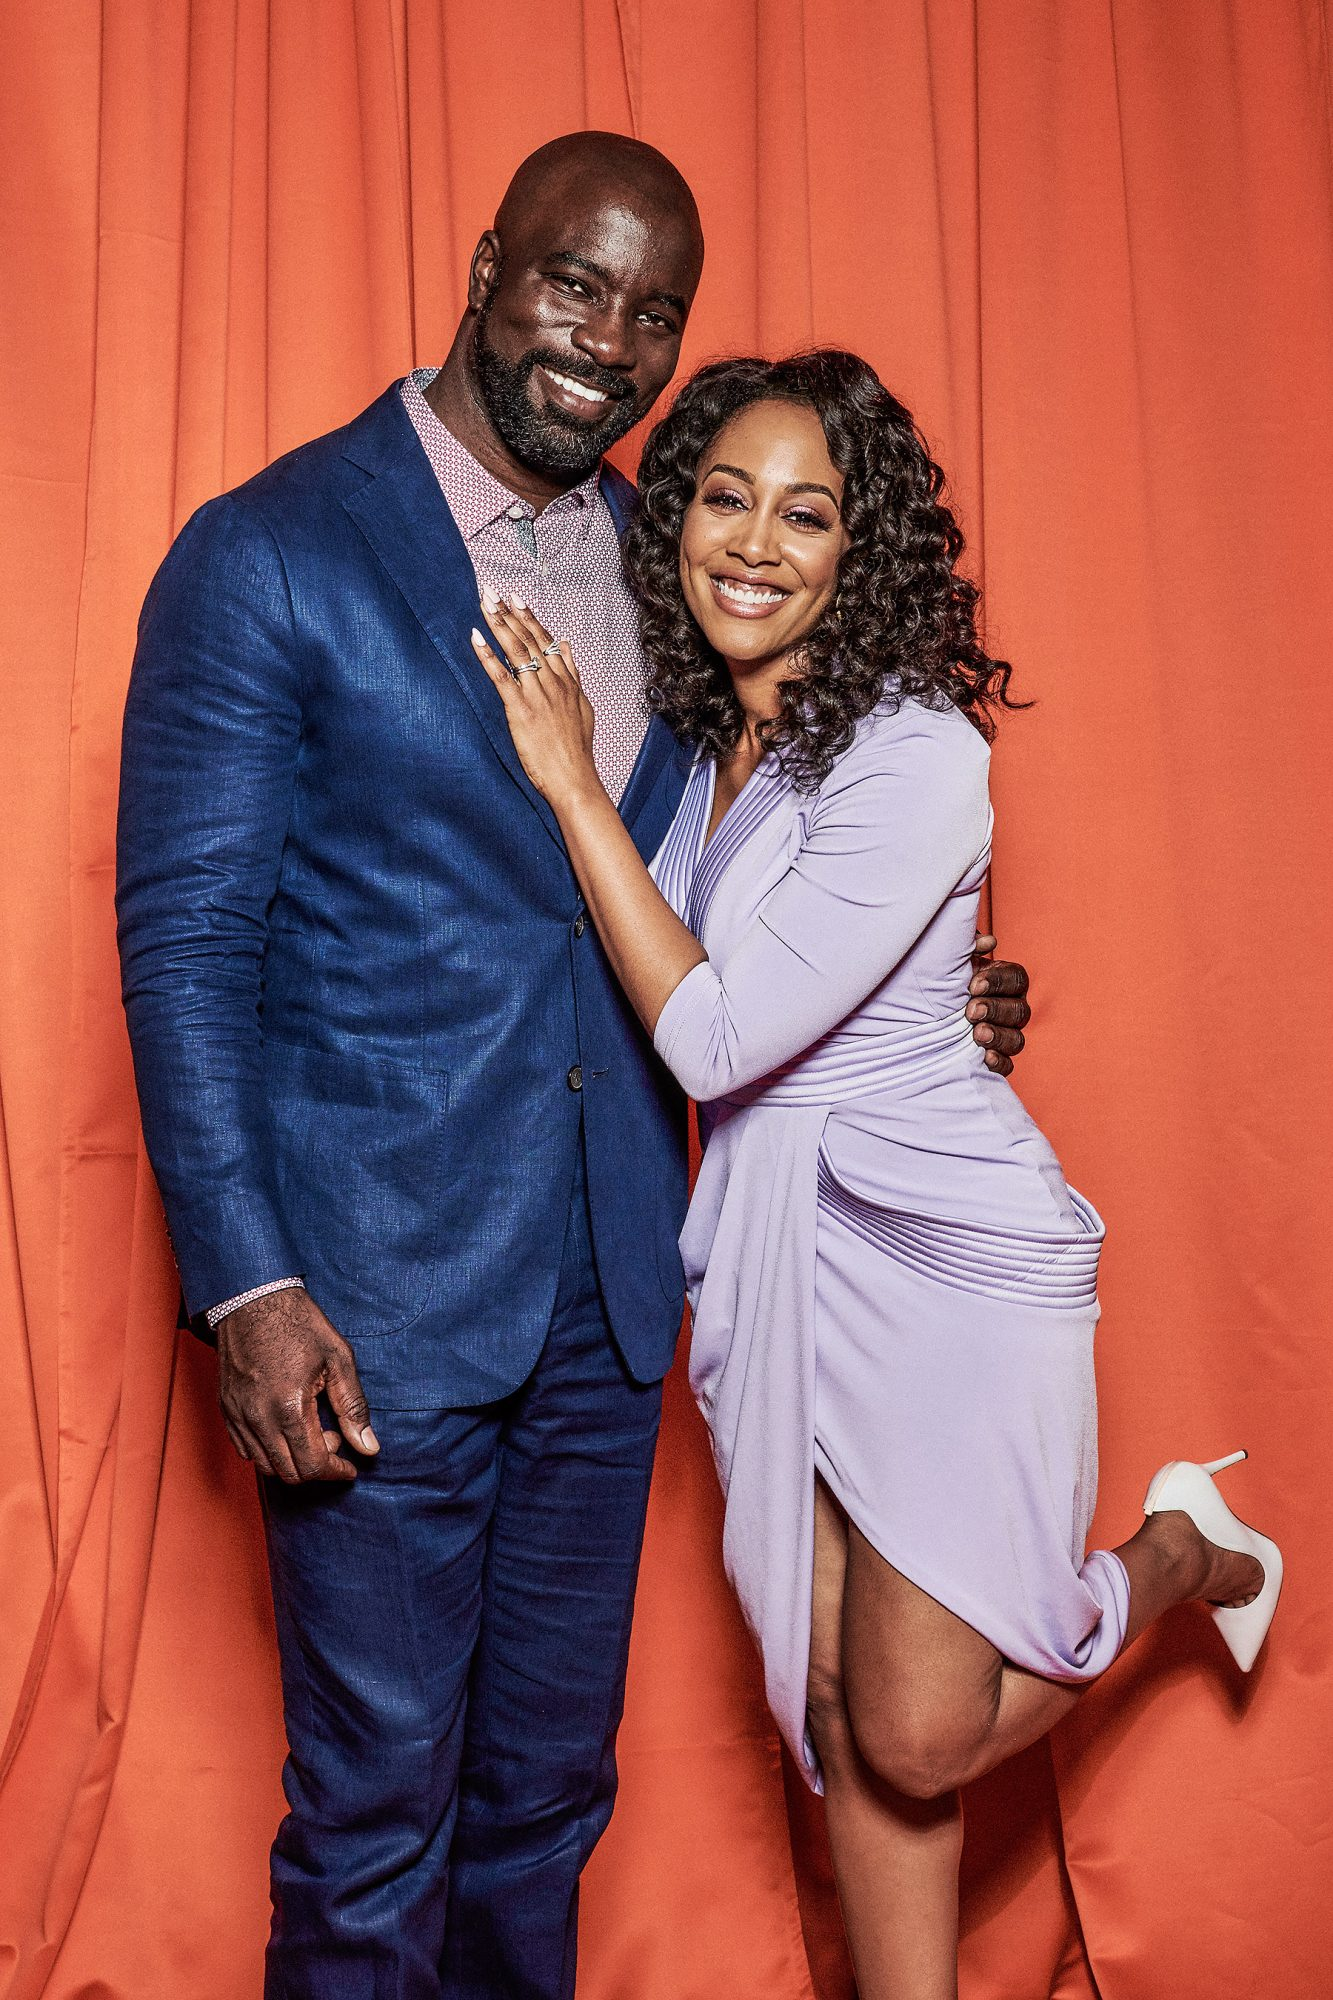 Mike Colter and Simone Missick